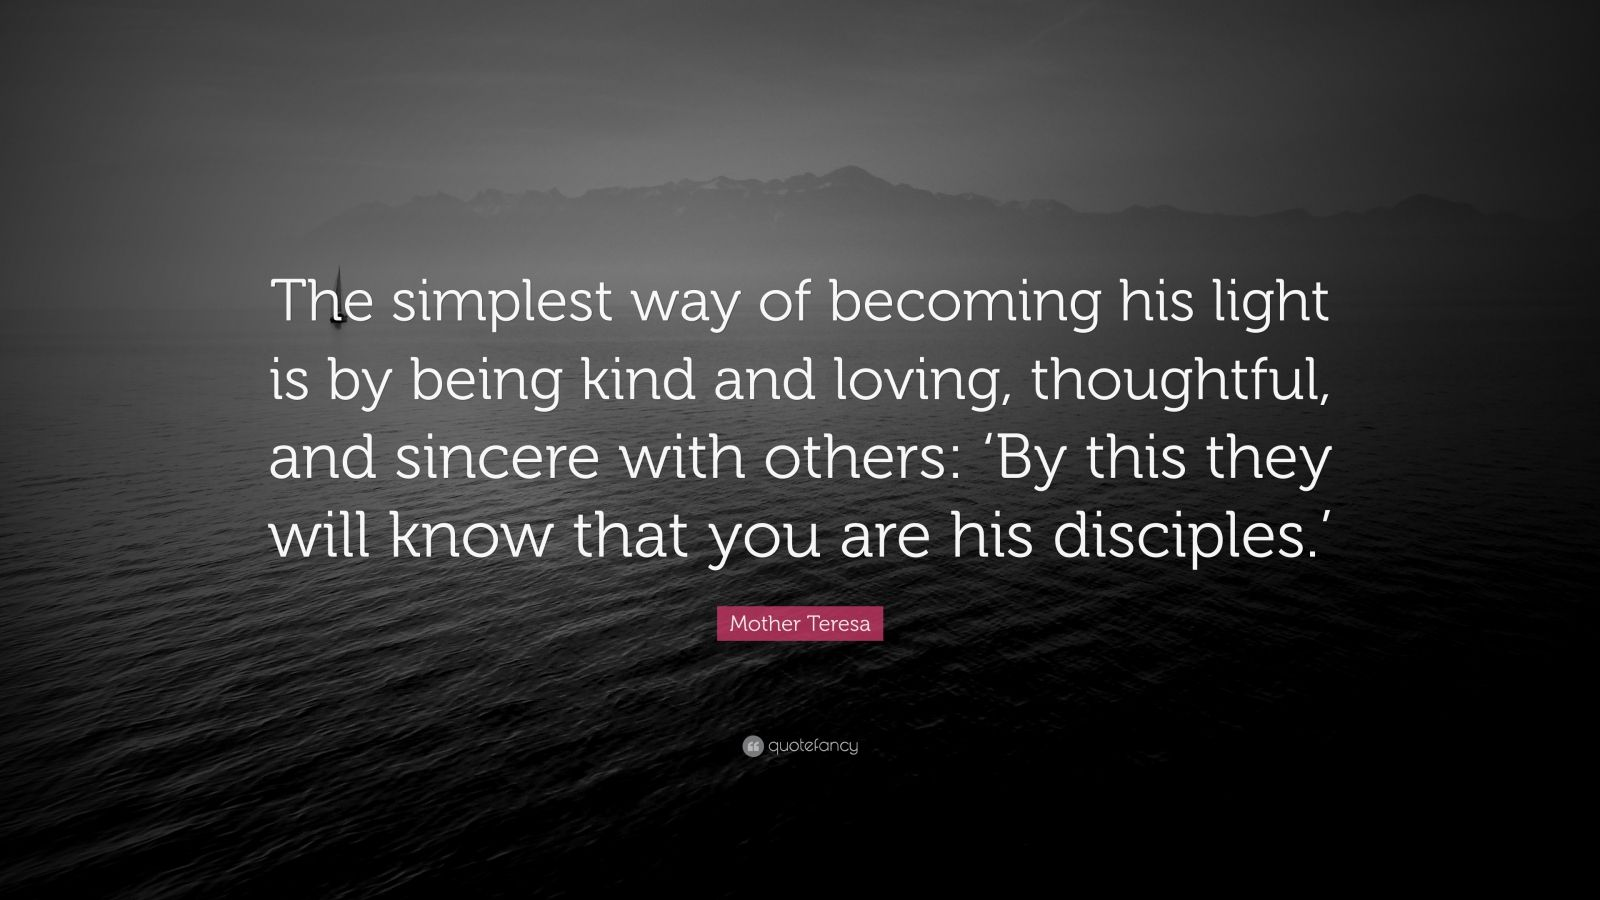 """Mother Teresa Quote: """"The simplest way of becoming his light is by being kind and loving, thoughtful, and sincere with others: 'By this they will know that you are his disciples.'"""""""